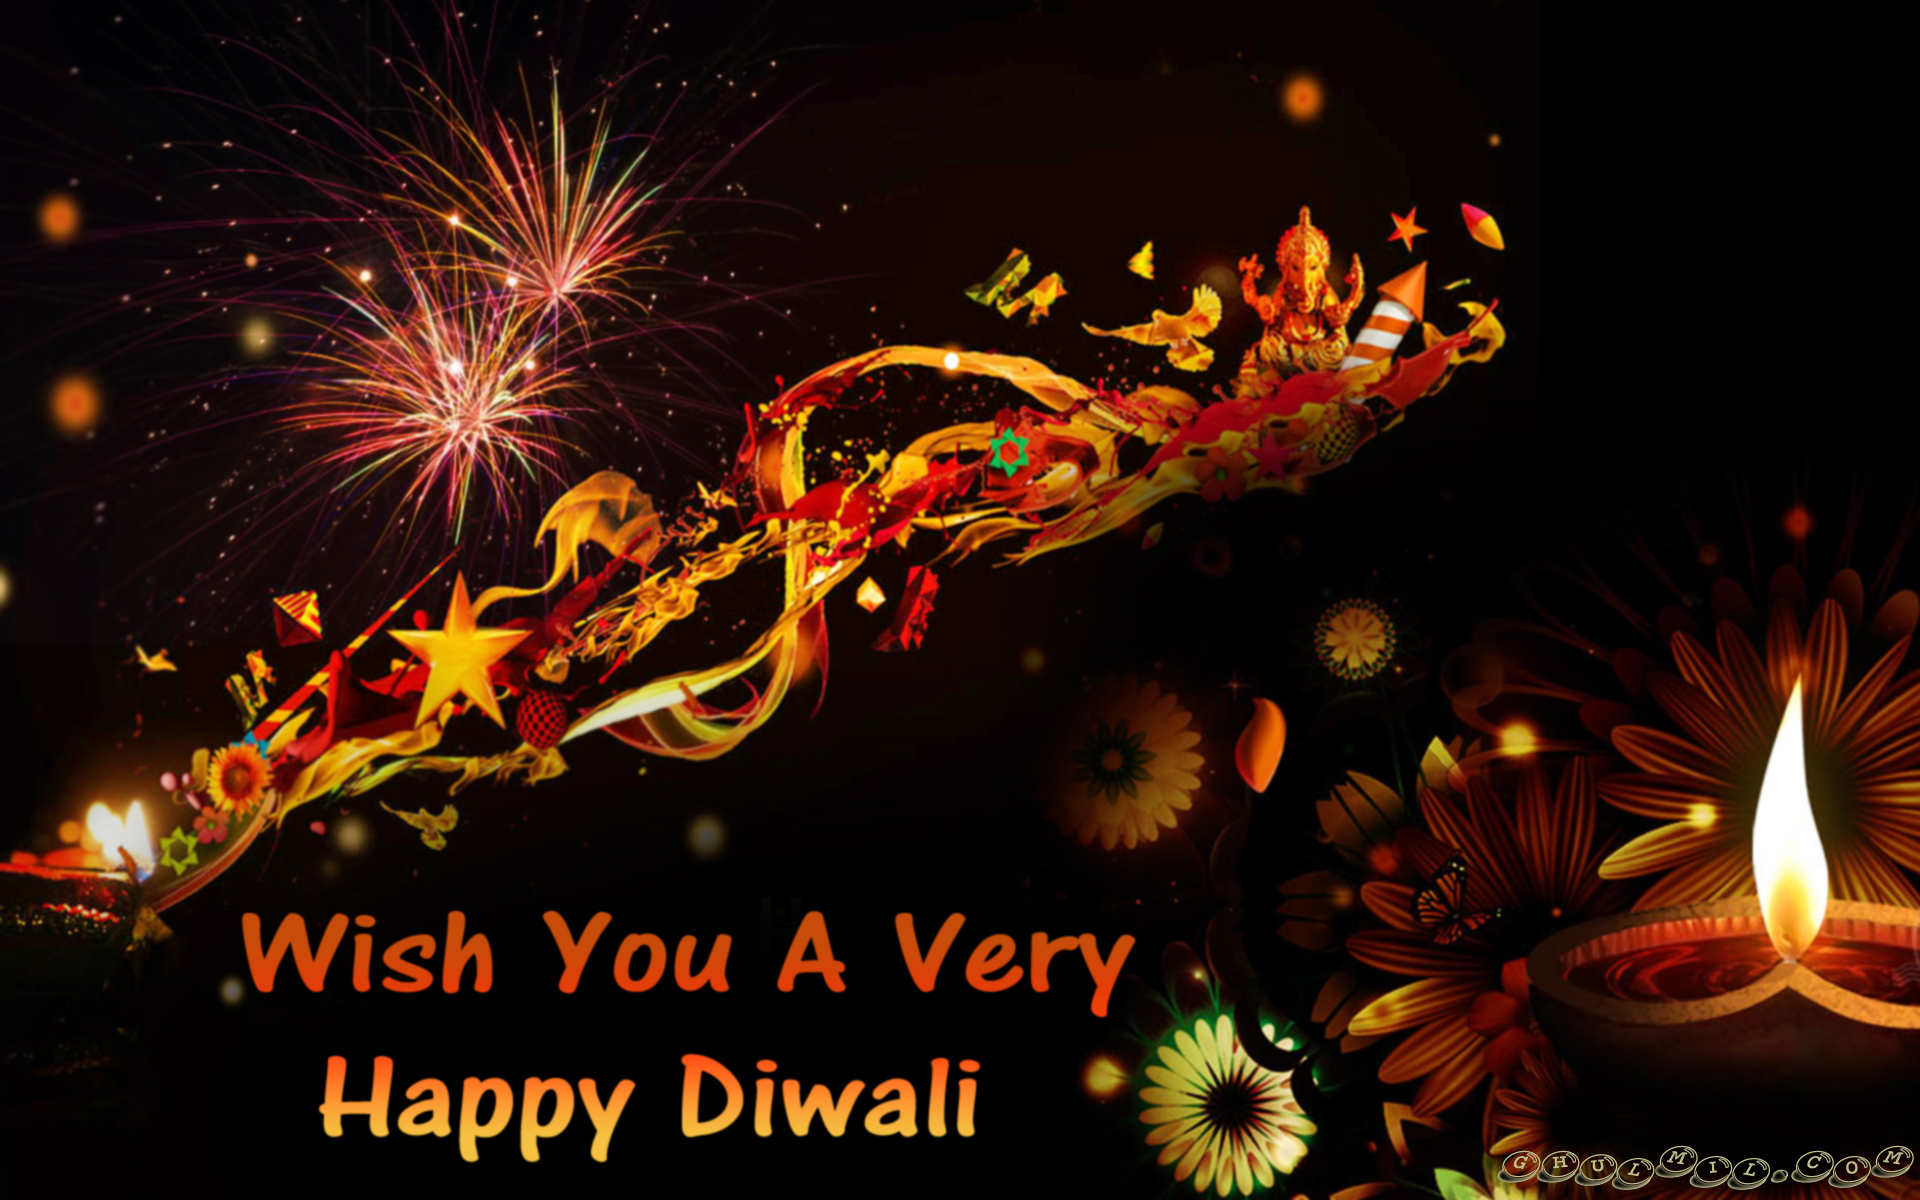 Diwali festival animated images